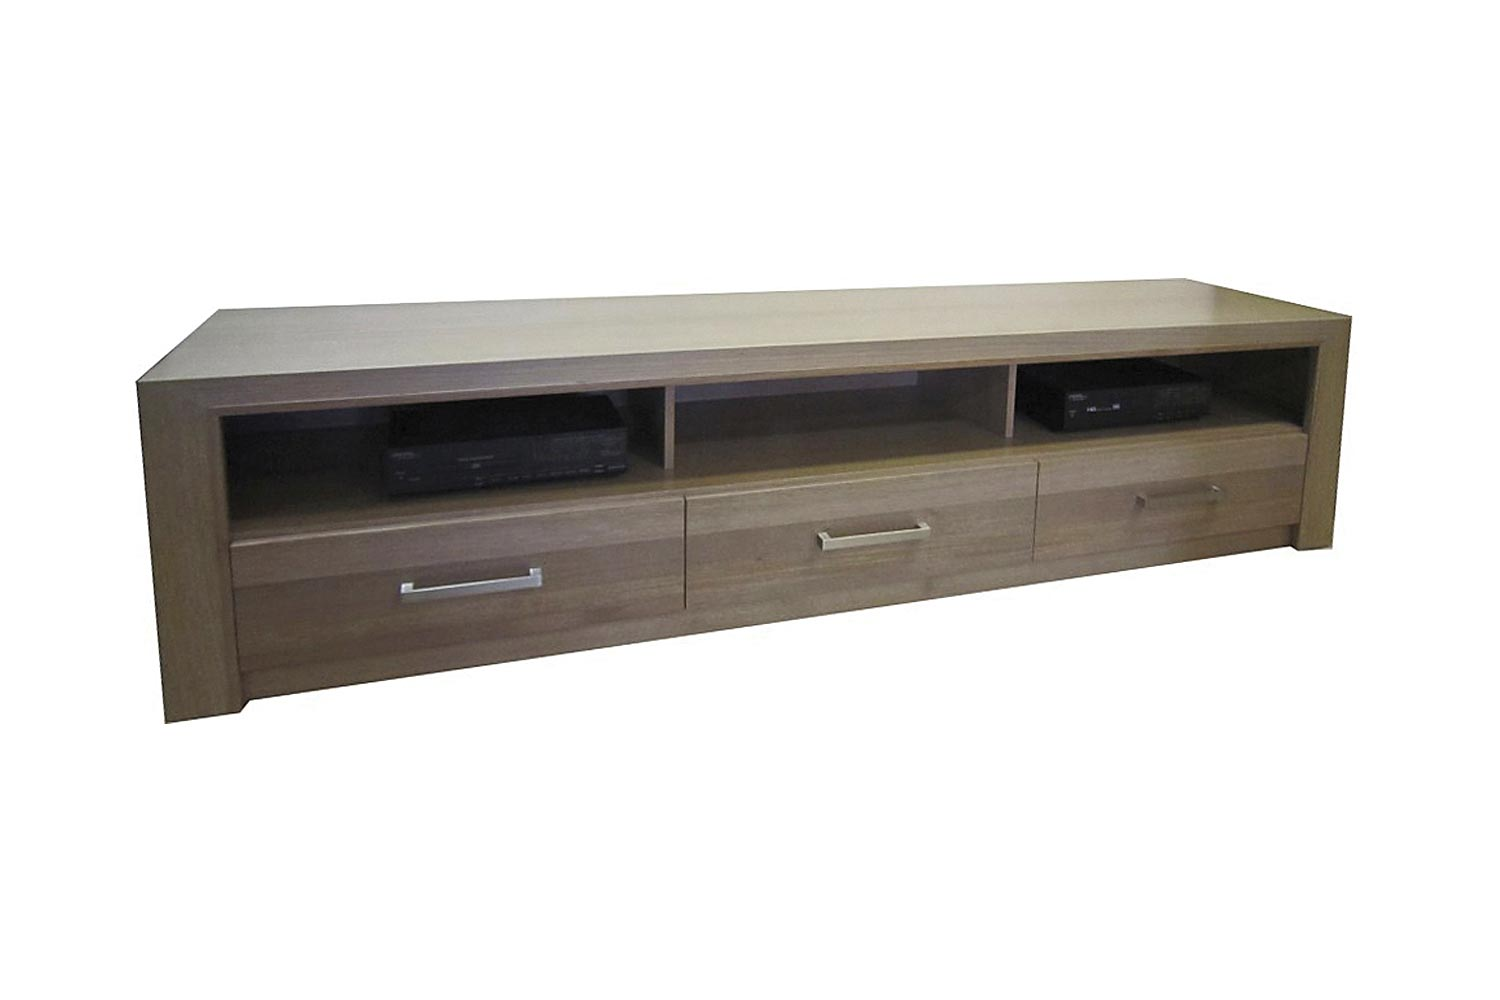 Tv Lift Cabinet Australia Australian Furniture Range Tessa Furniture